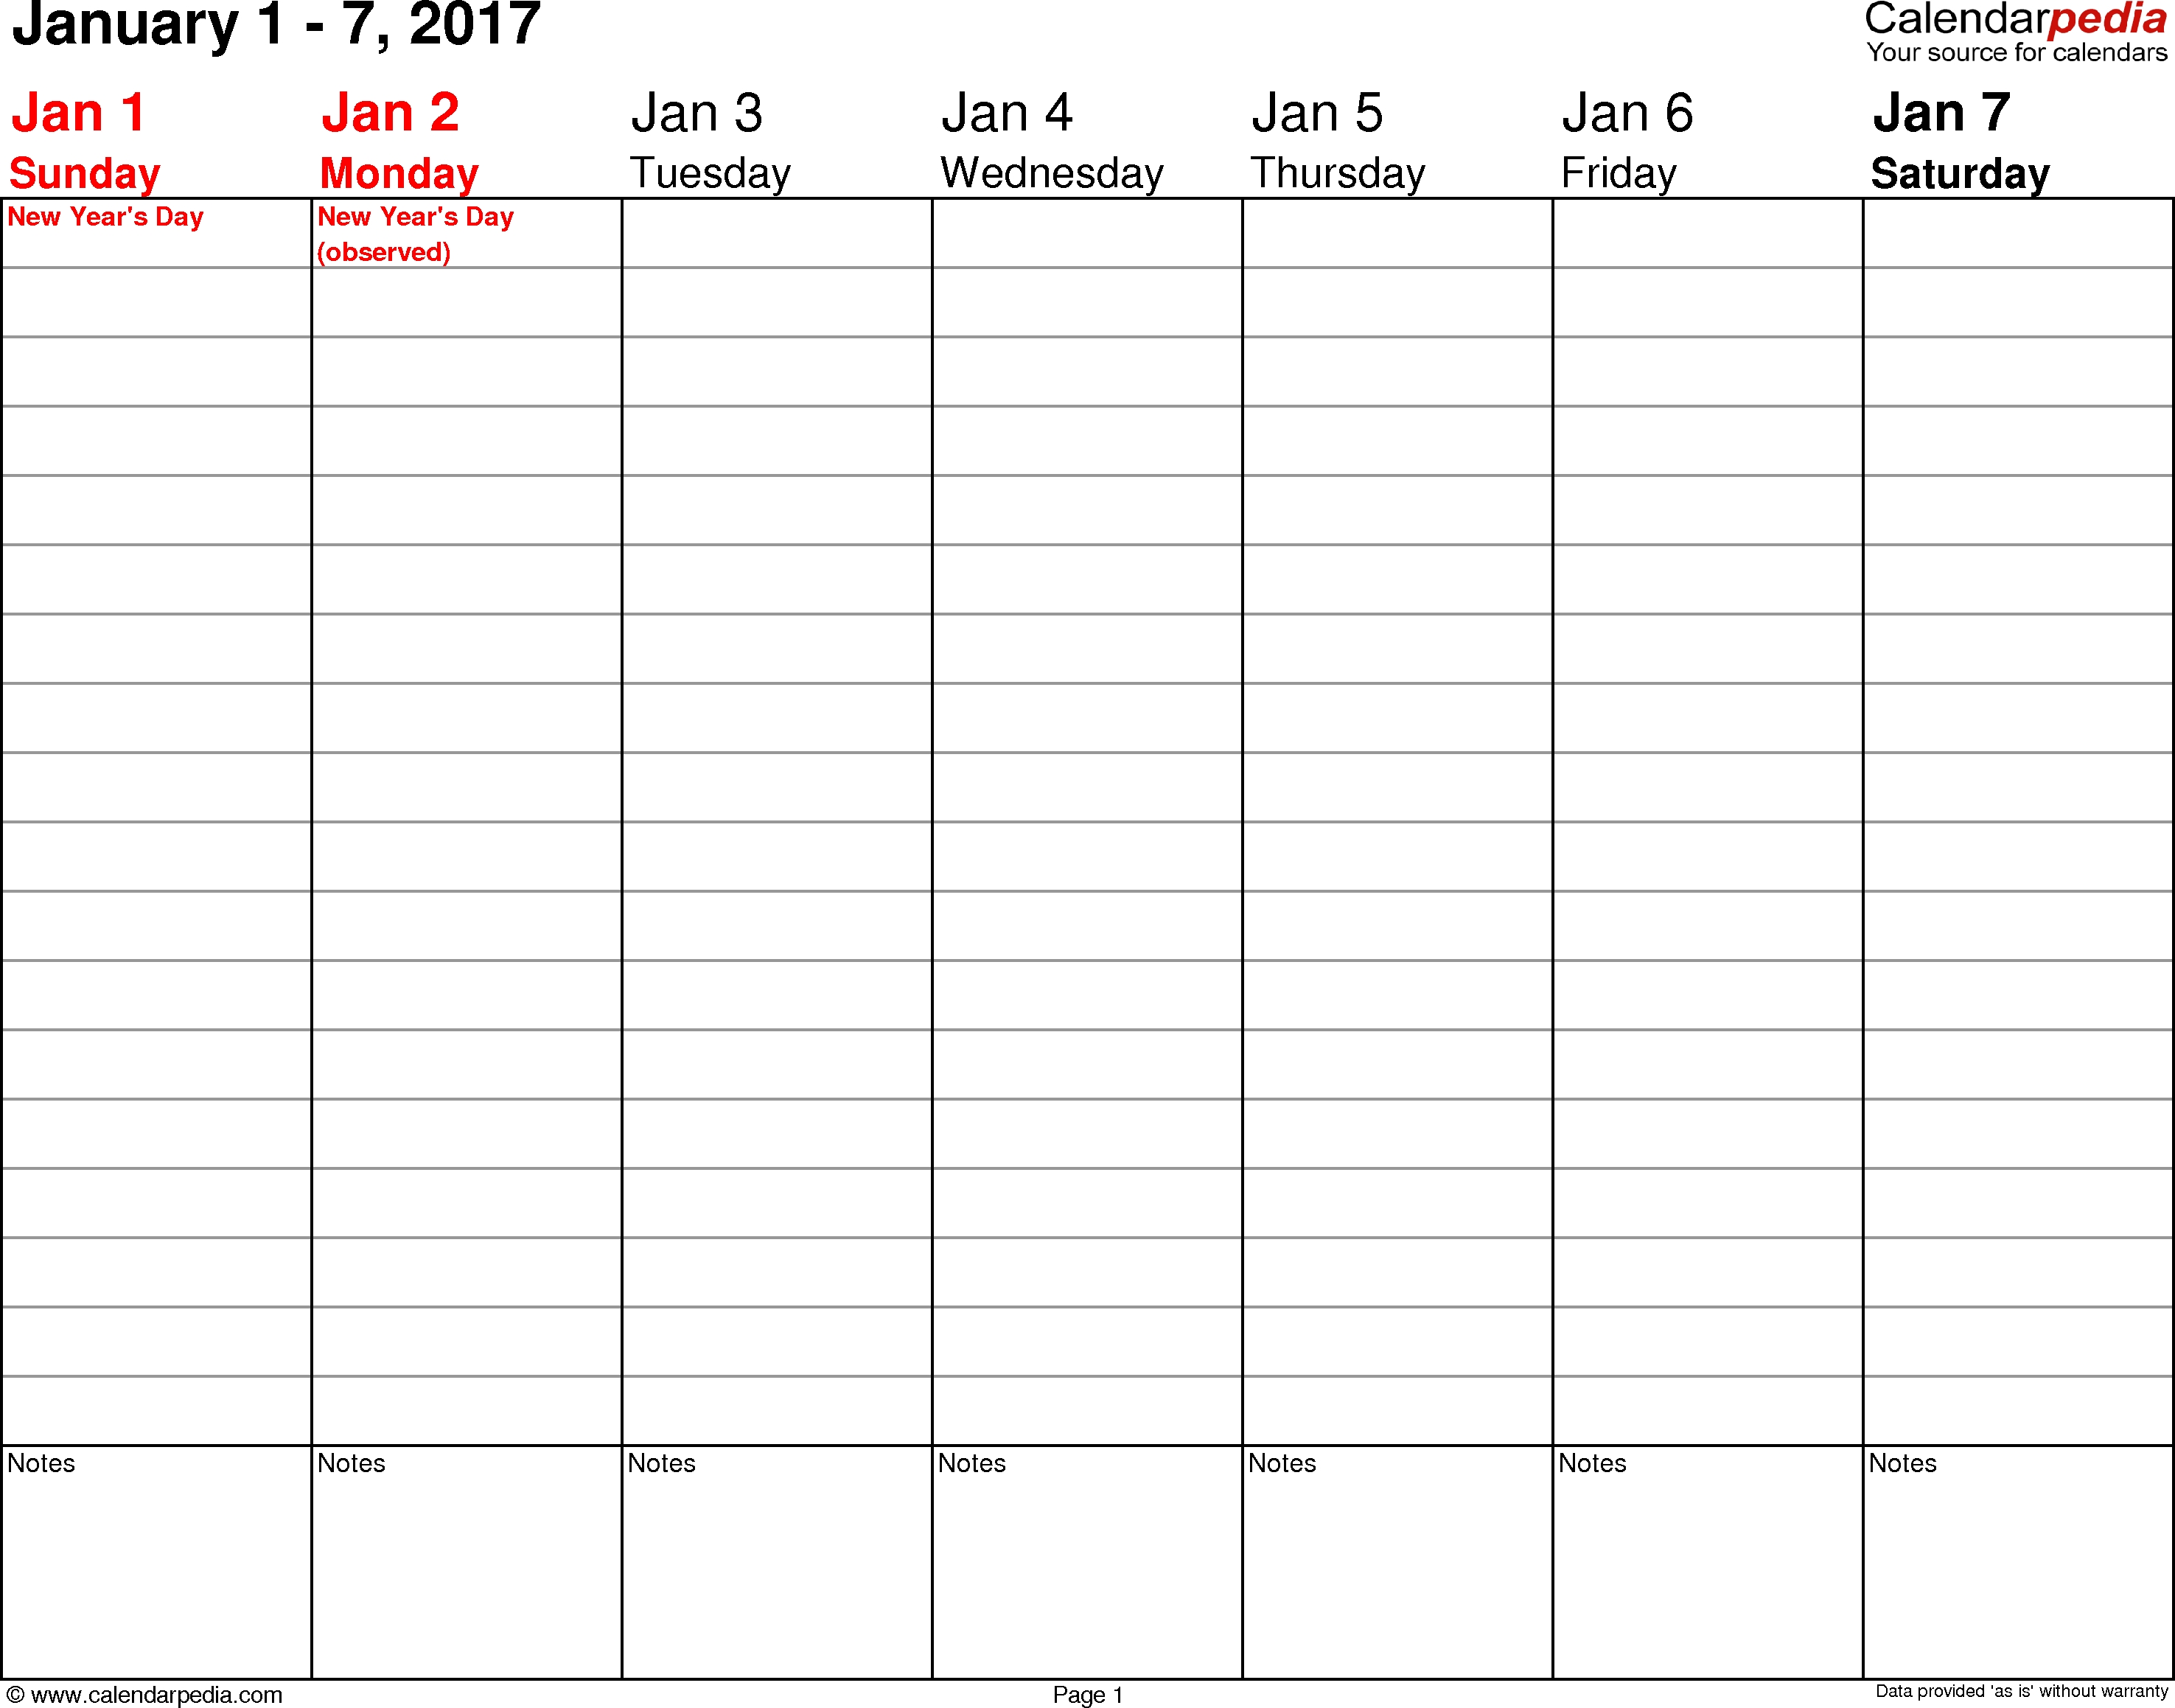 Weekly Calendars 2017 For Pdf - 12 Free Printable Templates